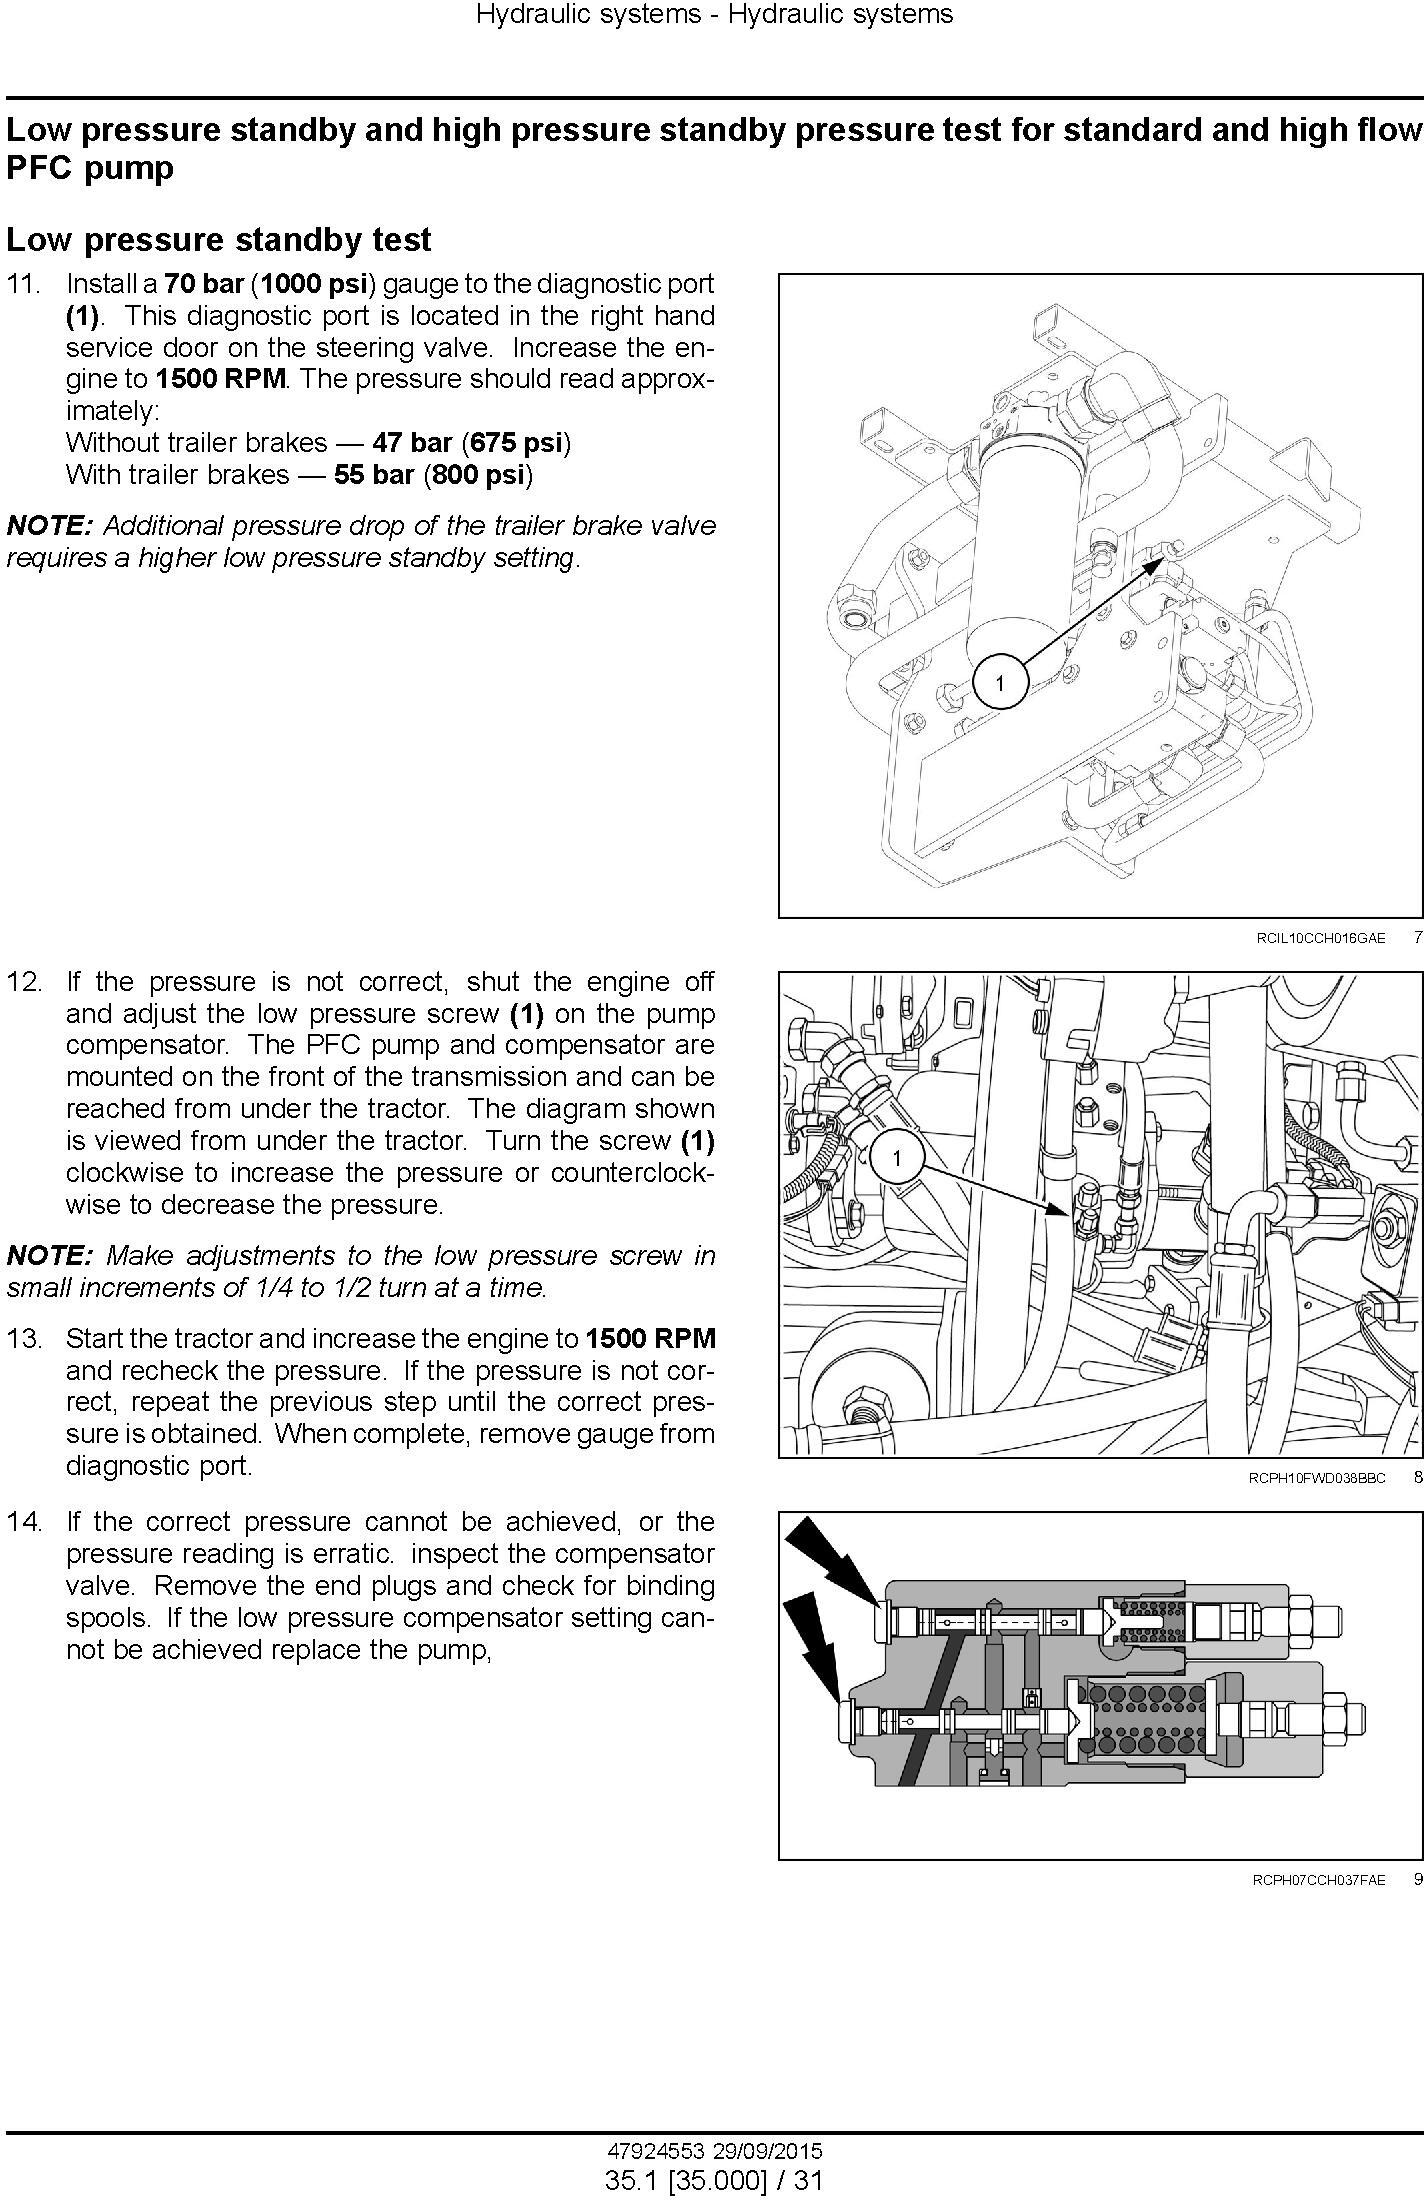 New Holland T9.435, T9.480, T9.530, T9.565, T9.600, T9.645, T9.700 Tractor Service Manual (Europe) - 3